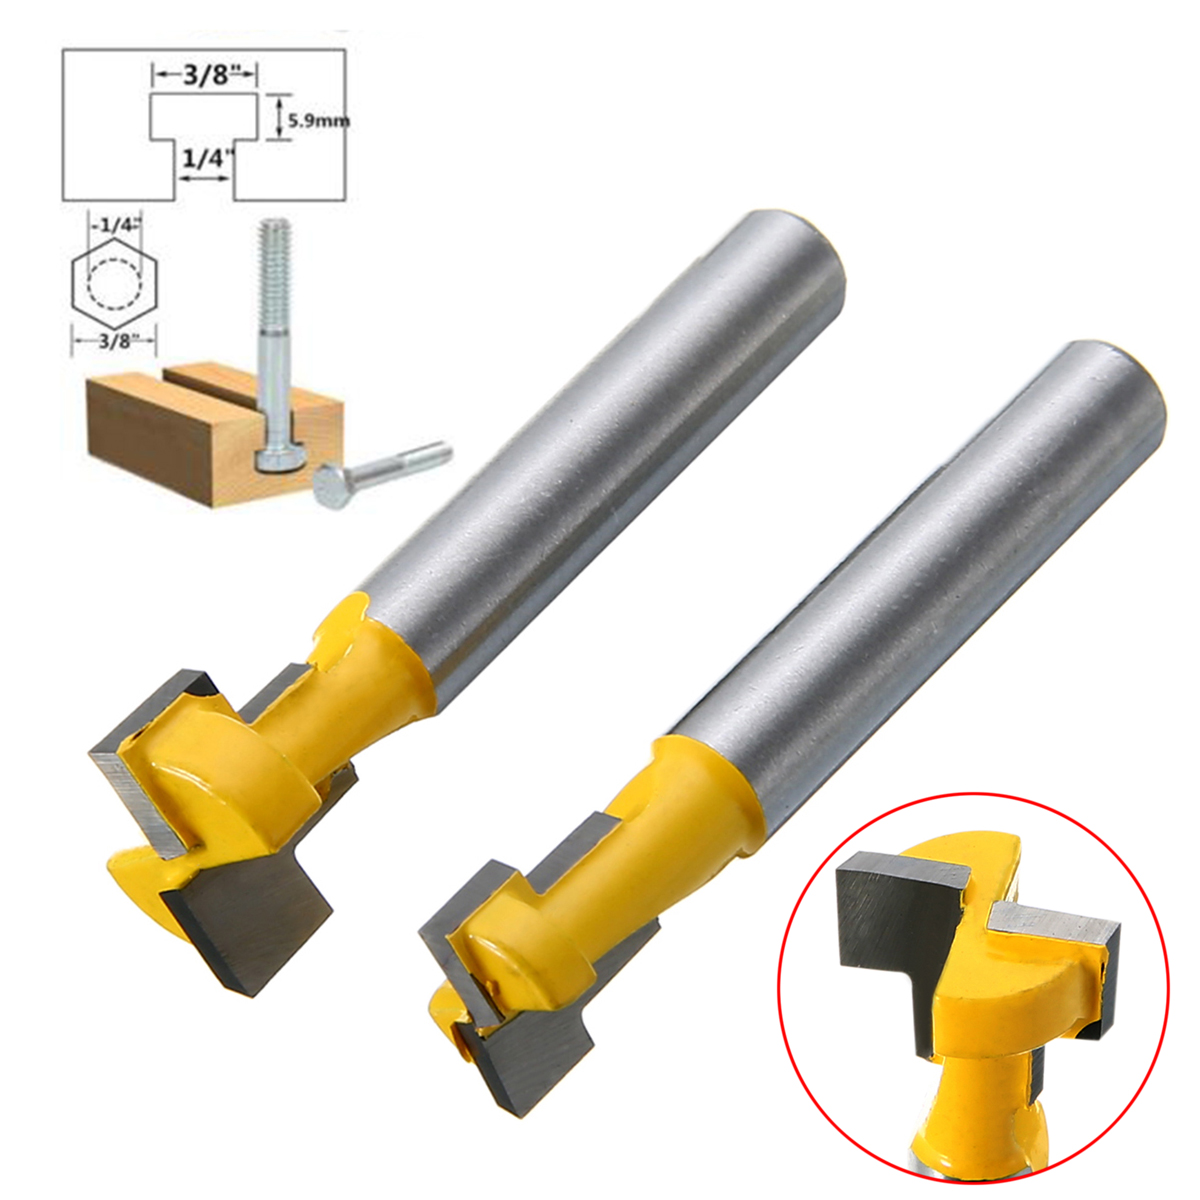 2Pcs 3/8'' & 1/2'' T-Slot Wood Milling Cutter 1/4'' Shank Steel Handle Router Bits For DIY Wood Working Tools  1 2 2 50 8mm milling cutter for drawer wood plug wood milling cutter